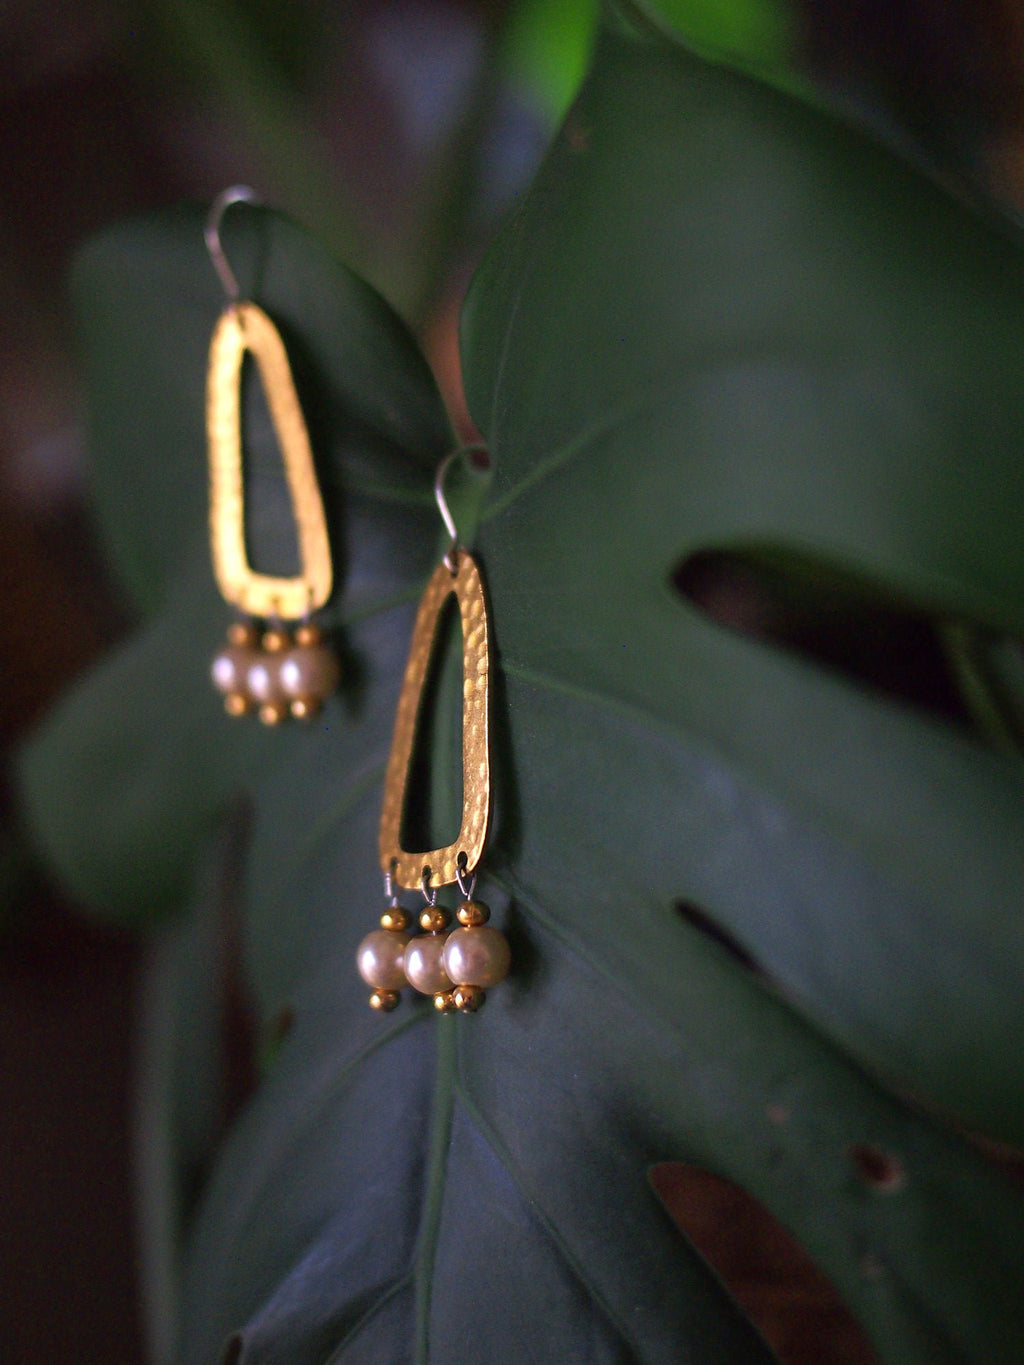 The Empress' Pearls Earrings - Hammered brass shape dangle earrings beaded with pearl & gold seed bead drops.